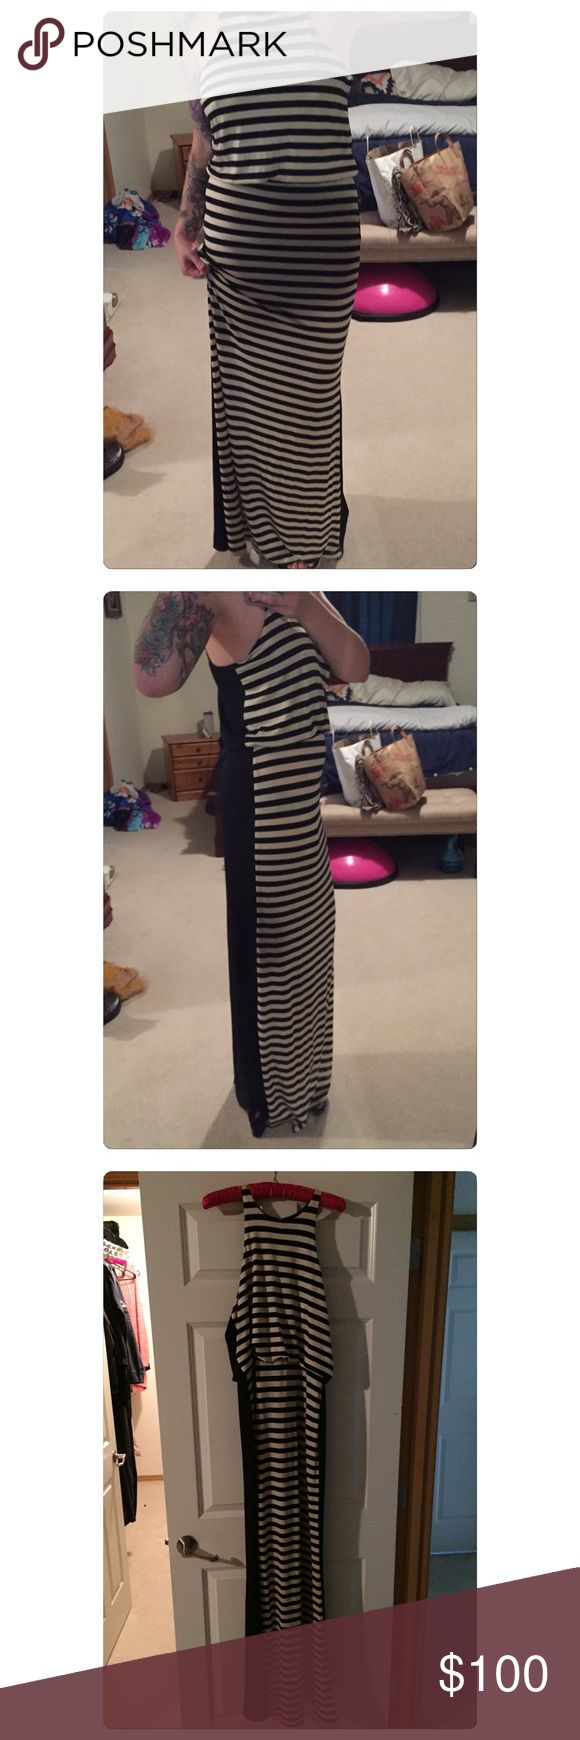 ABS Allen Schwartz BOMB sexy dress Breathtaking ABS Allen Schwartz dress. Only worn for 2 hours and excellent condition. Flawless and timeless look. Black and cream striped front with black back. Open slit below the knees in back with halter neck and slit closure. (Shown in 4th picture). ABS Allen Schwartz Dresses